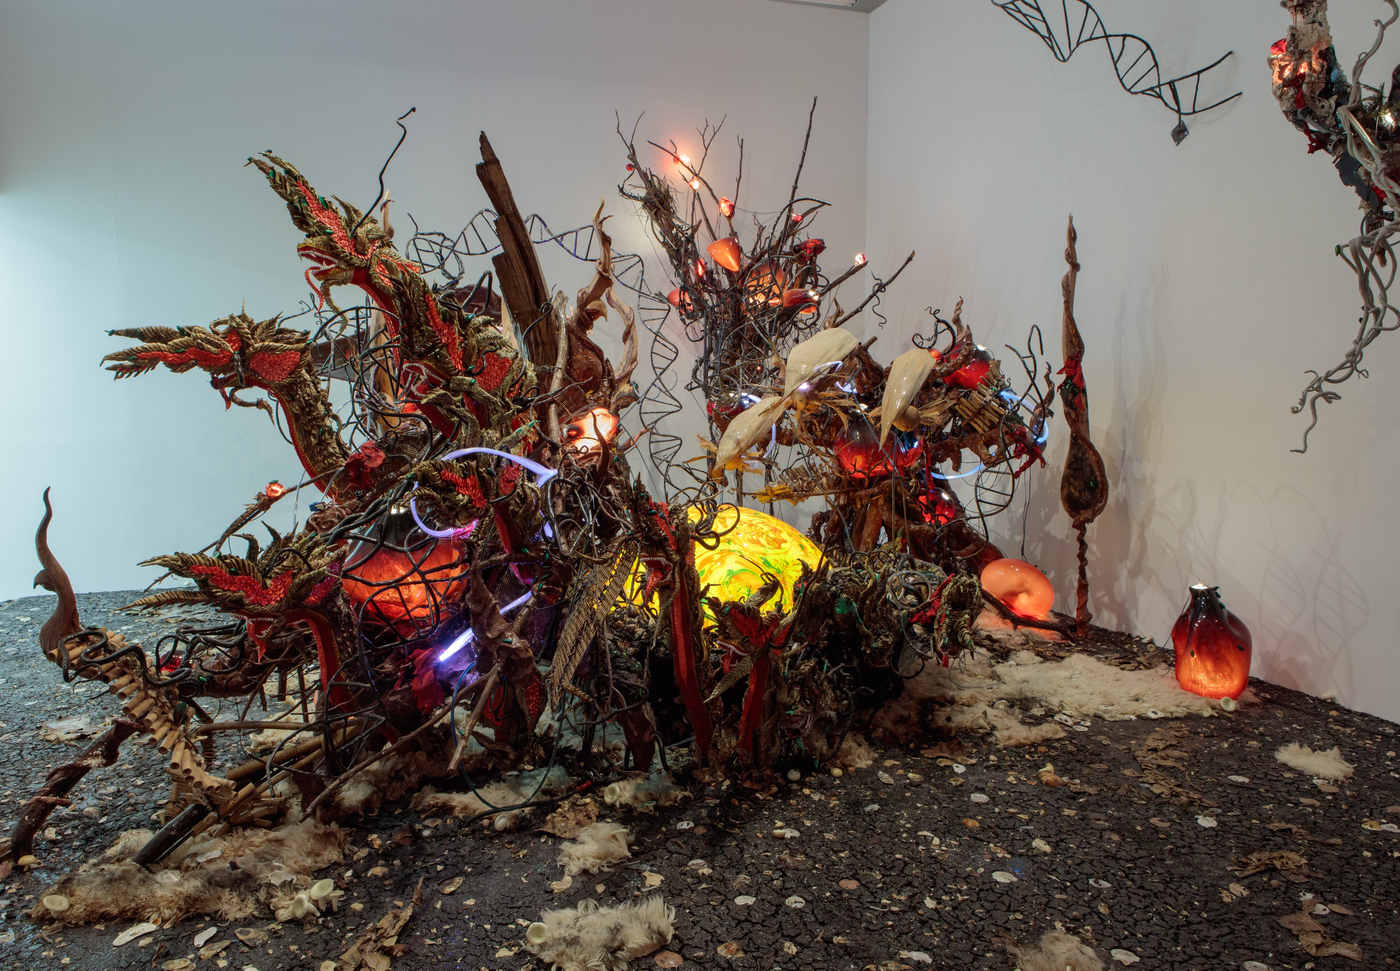 Korakrit Arunanondchai At C L E A R I N G Art Viewer Wiring New Home Fiber Optic With People Funny Names 4 Garden 2017 Indigo Powder Dads Dirt Seafood Waste Blown Glass Clay Led Lights Optics Electrical Wires